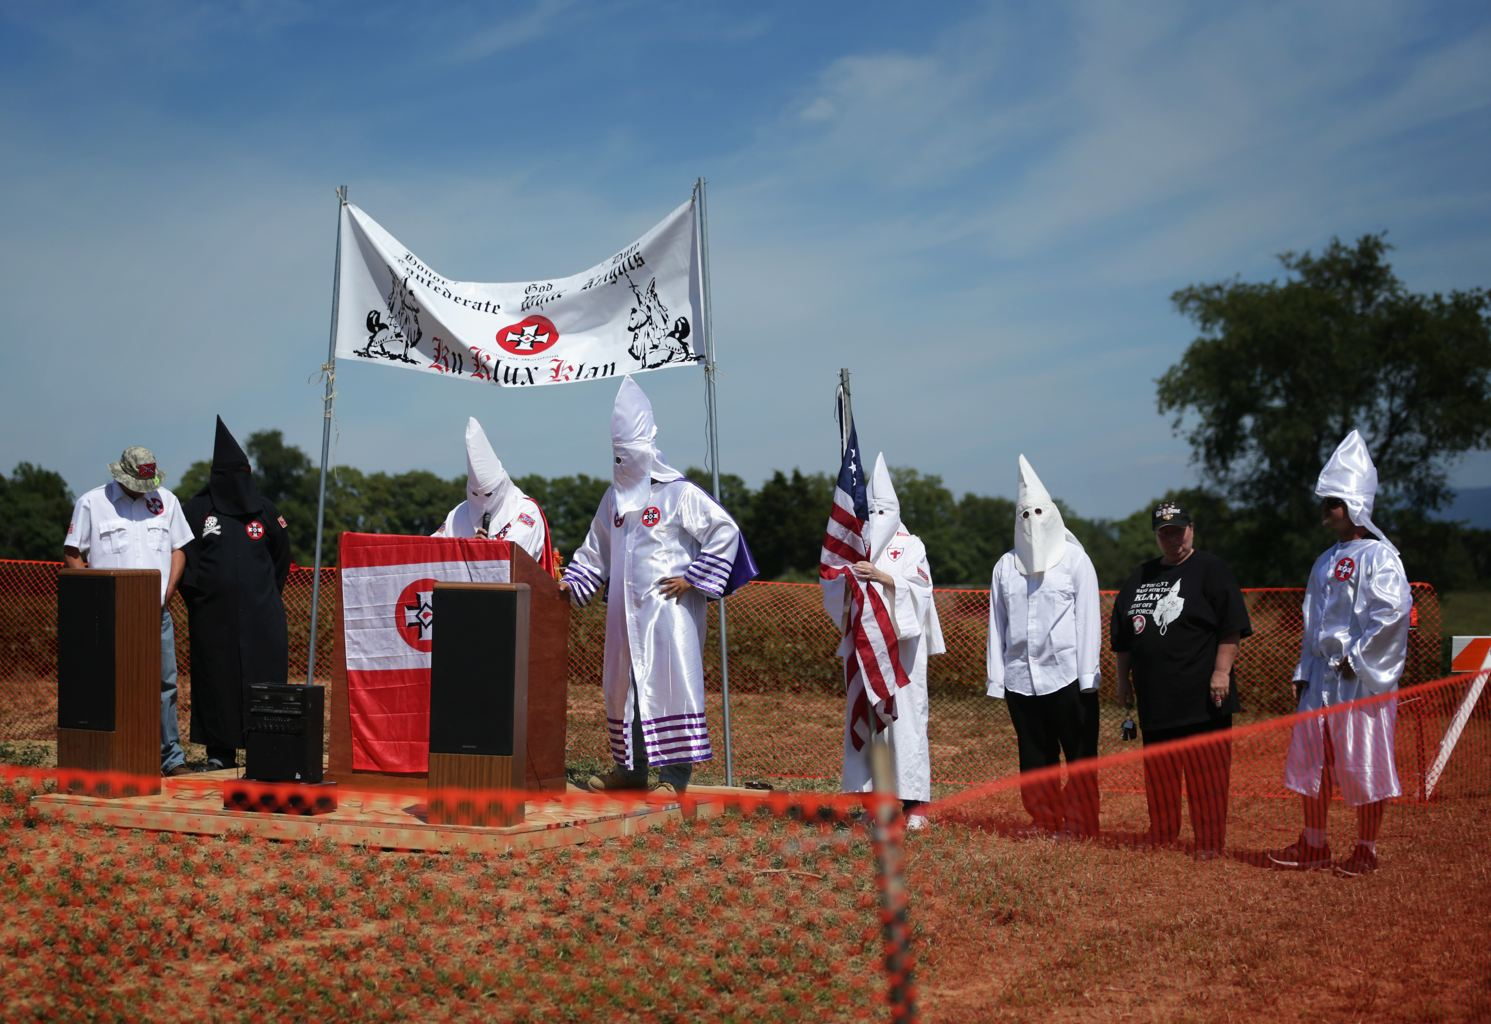 Lo Scalzo Epa >> U.S.Education And The New Jim Crow » KKK Rides Again